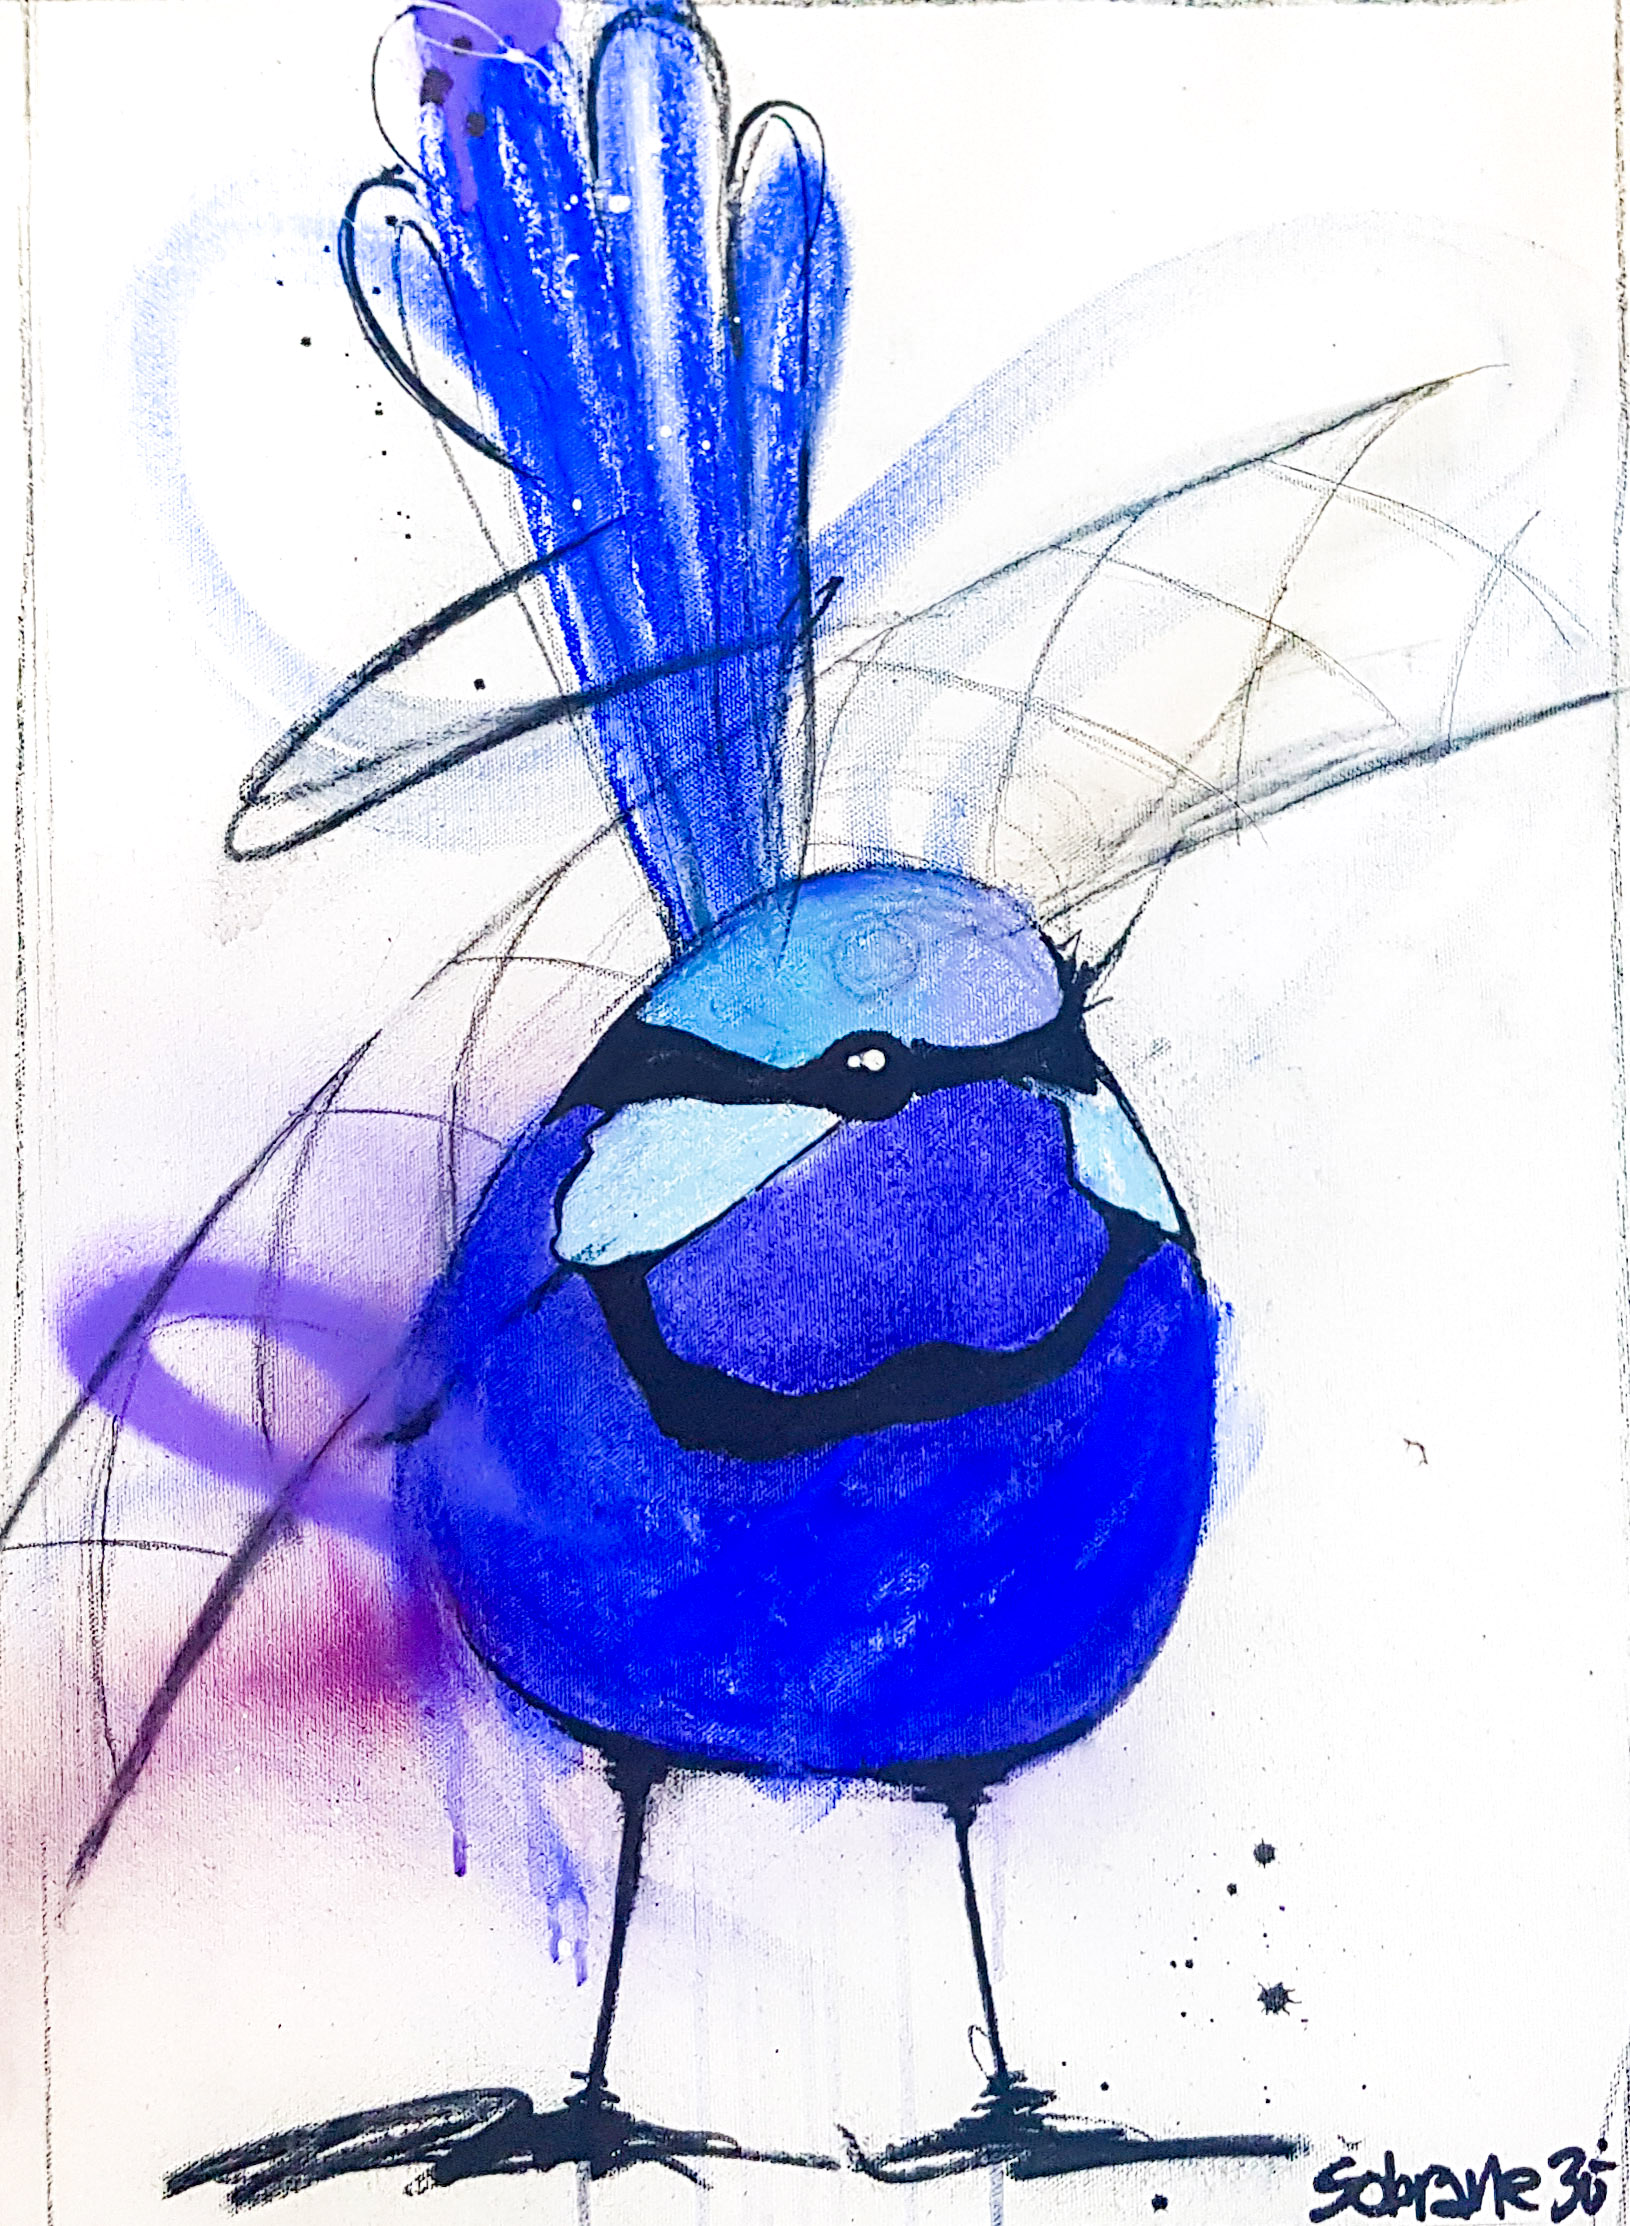 Splendid Blue Wren IV Original Original artwork completed in Pastels, spray-paint, charcoal and enamel.  Artwork is on canvas 53 x 38 cm FREE SHIPPING ON ALL ORIGINALS WORLDWIDE